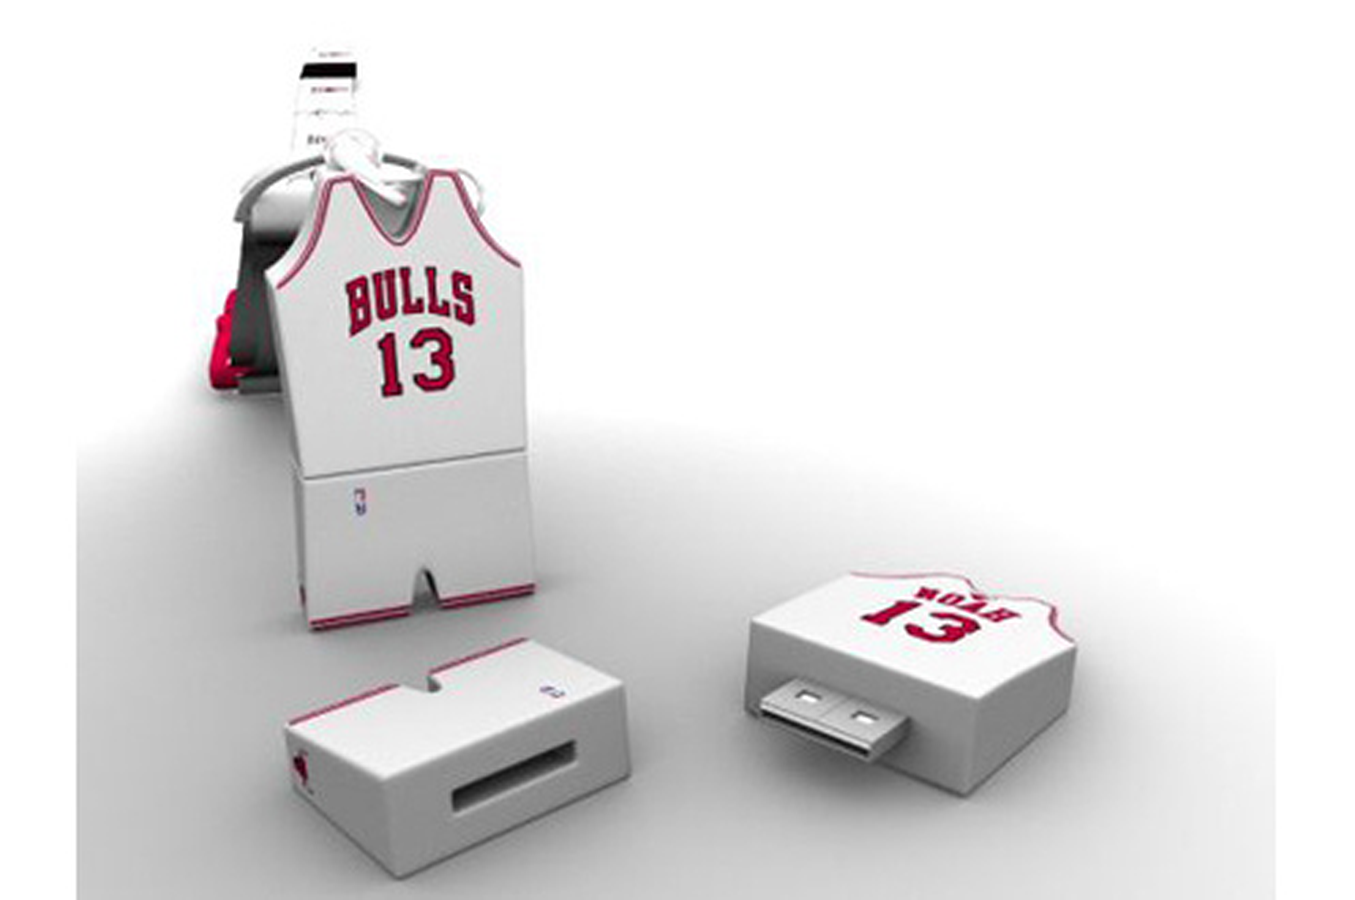 cl usb nelyo cle usb nba 4go bulls cleusbnba4gobulls 1274902 darty. Black Bedroom Furniture Sets. Home Design Ideas